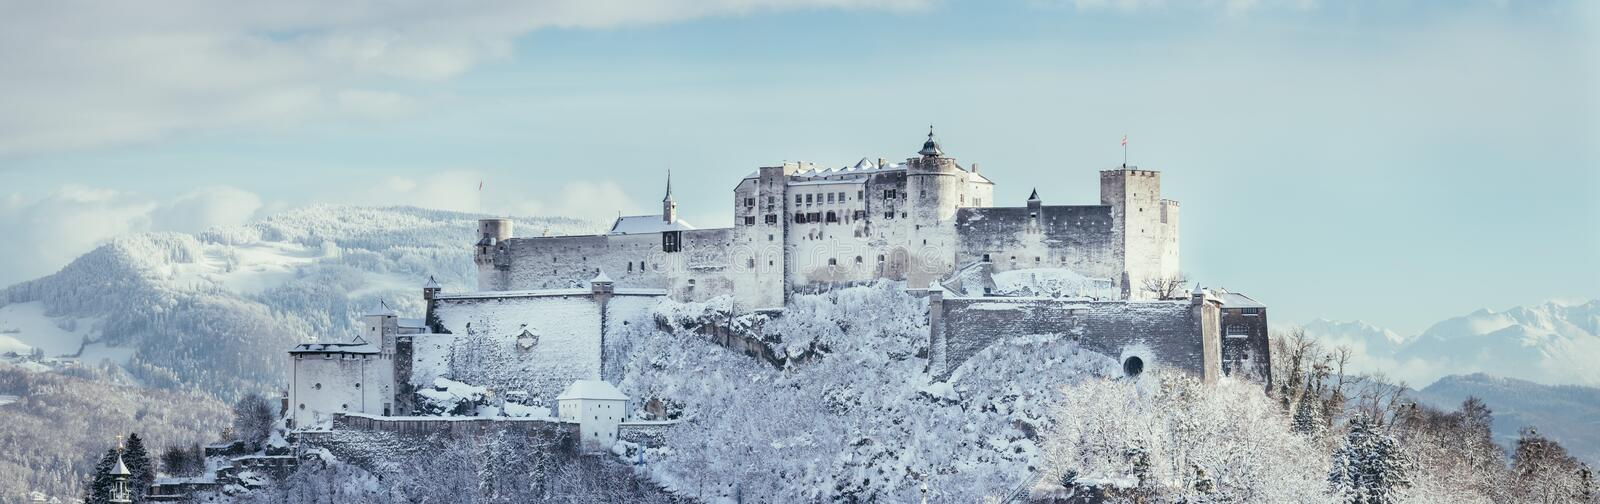 Fortress Hohensalzburg in the Winter, snowy. Landmark tourism europe travel frost landscape vacation medieval magic historic old panorama architecture austria stock photo